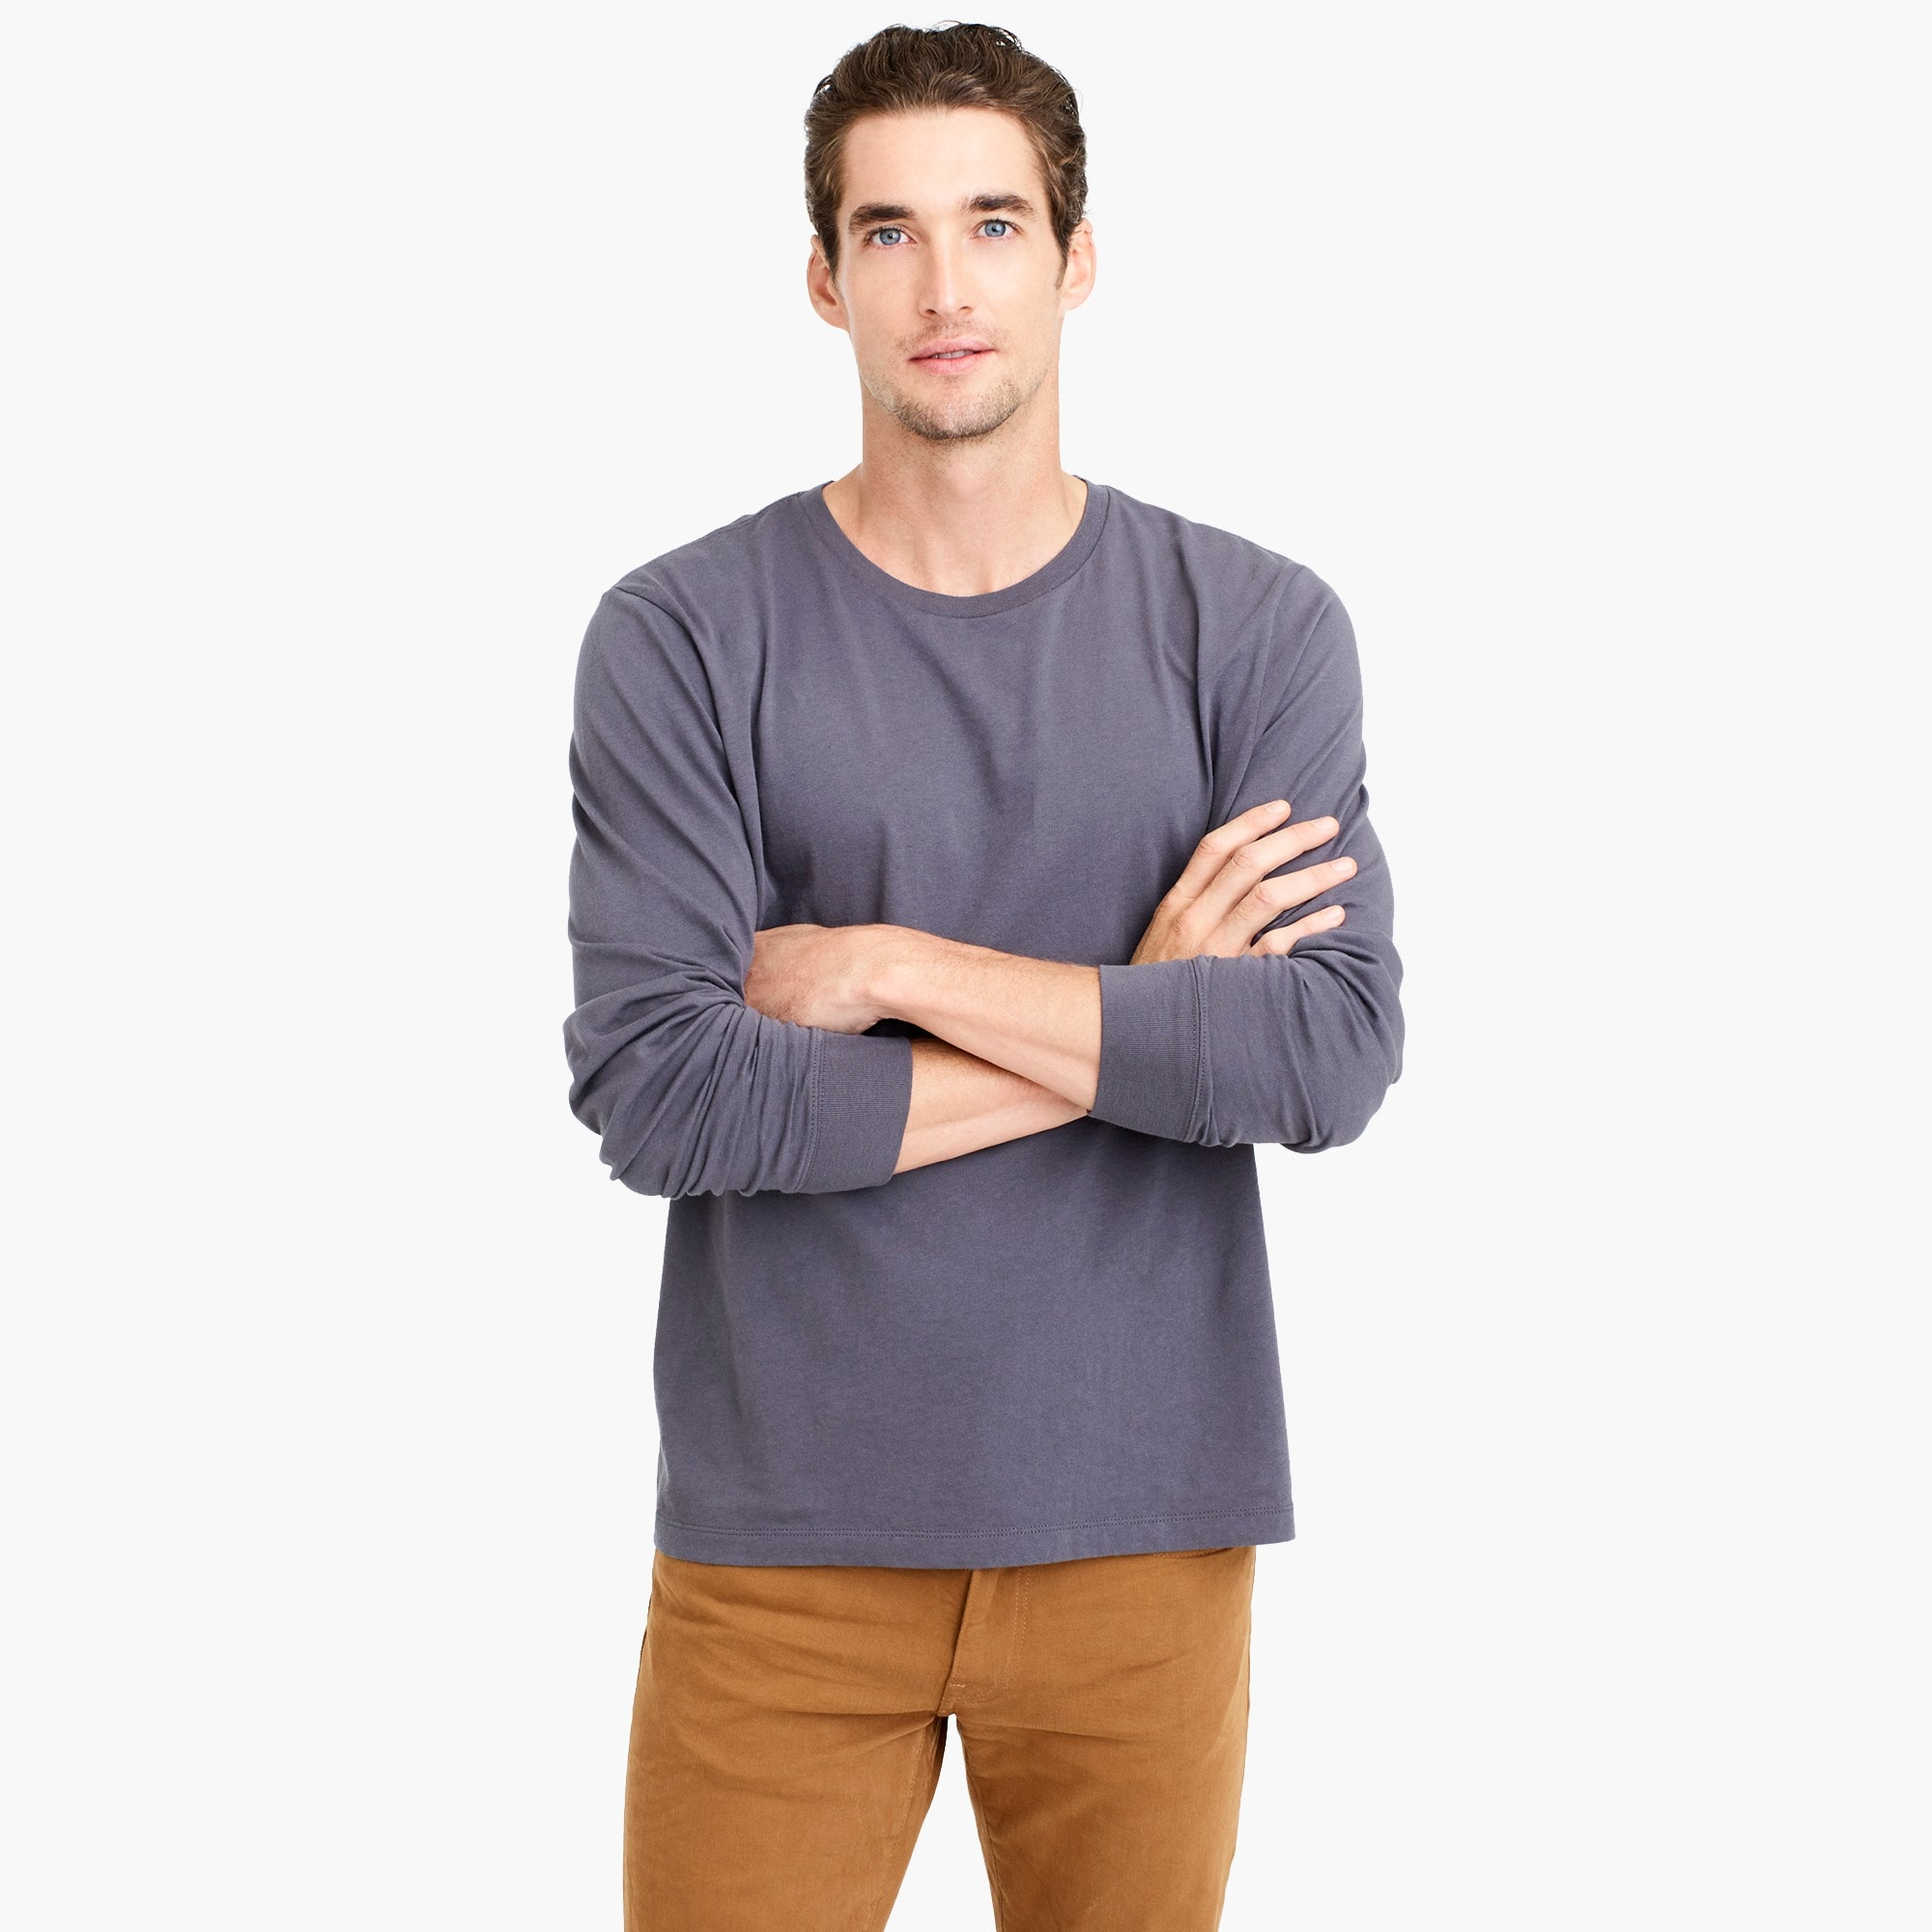 Image 1 for J.Crew Mercantile Broken-in long-sleeve T-shirt